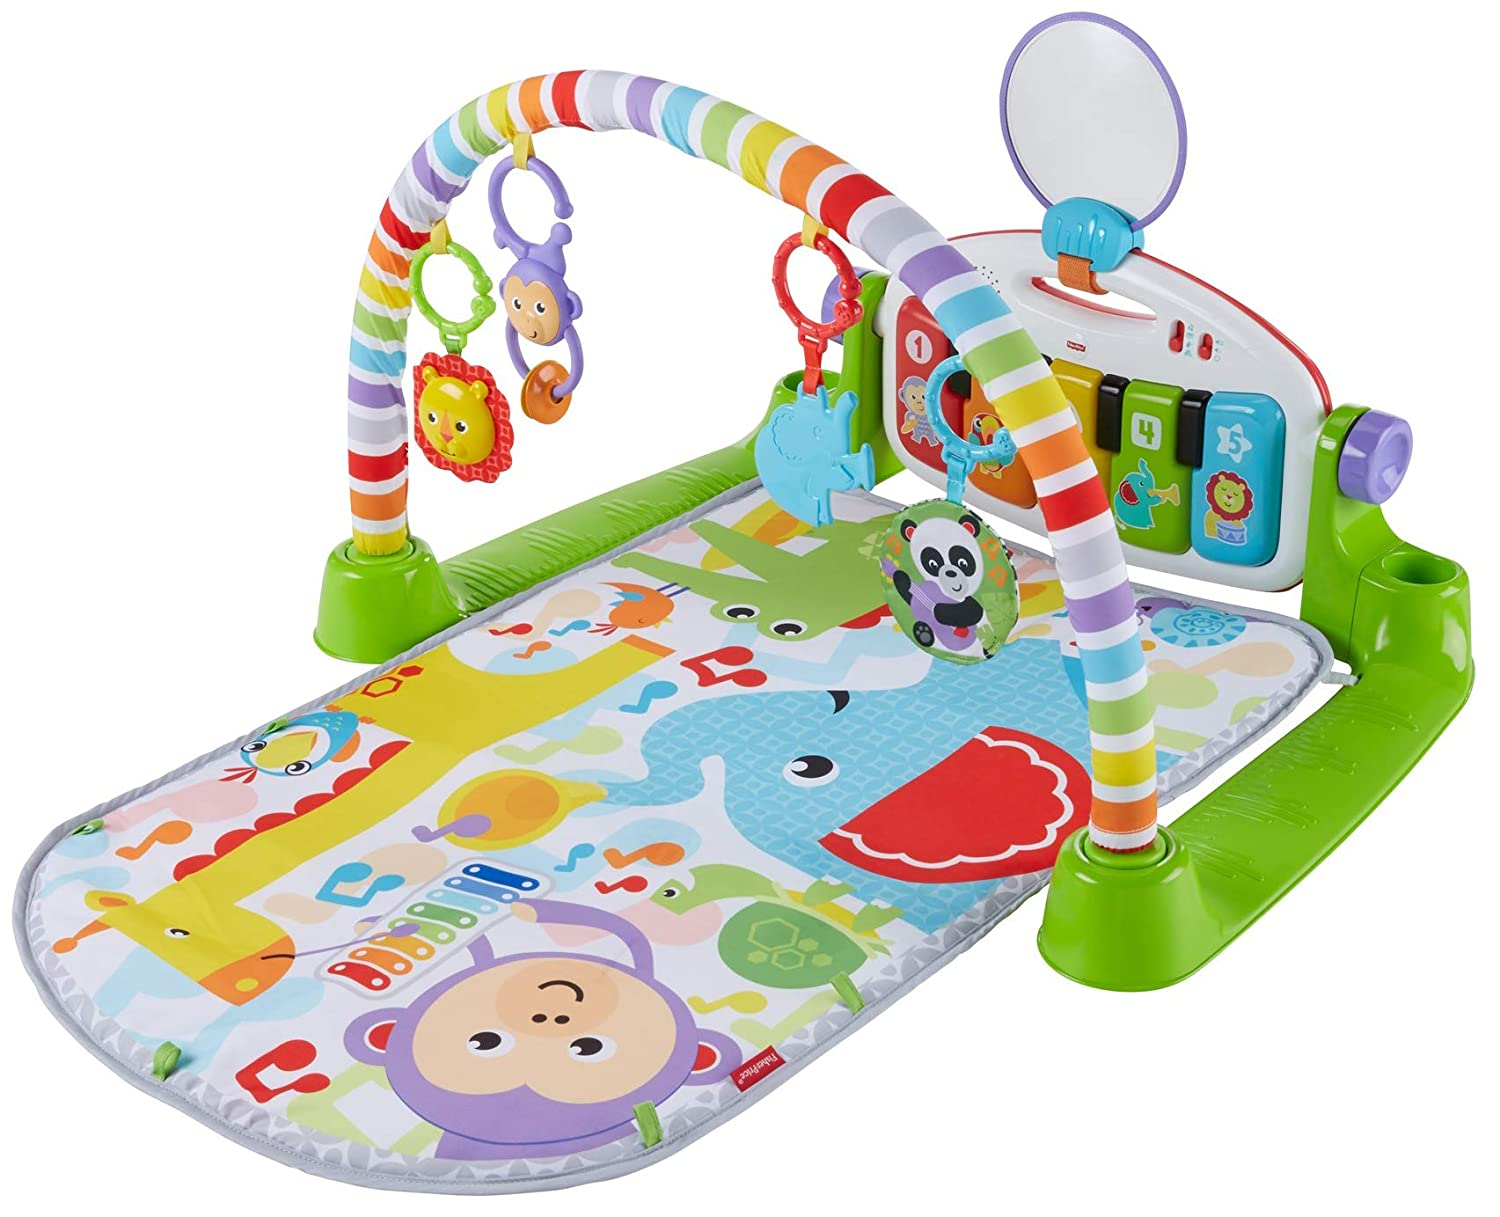 Pink Fisher-Price Deluxe Kick /& Play Piano Gym